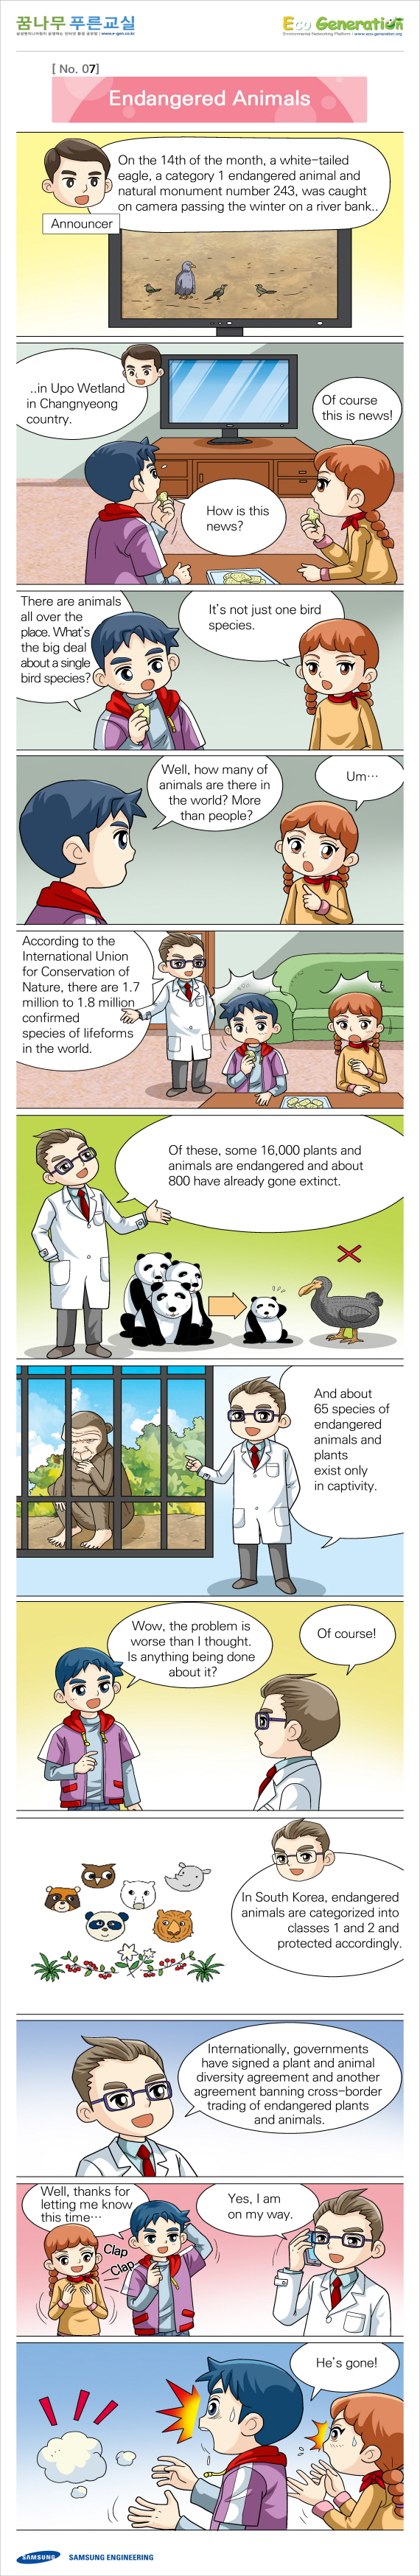 Environmental Comics 7.Endangered Animals